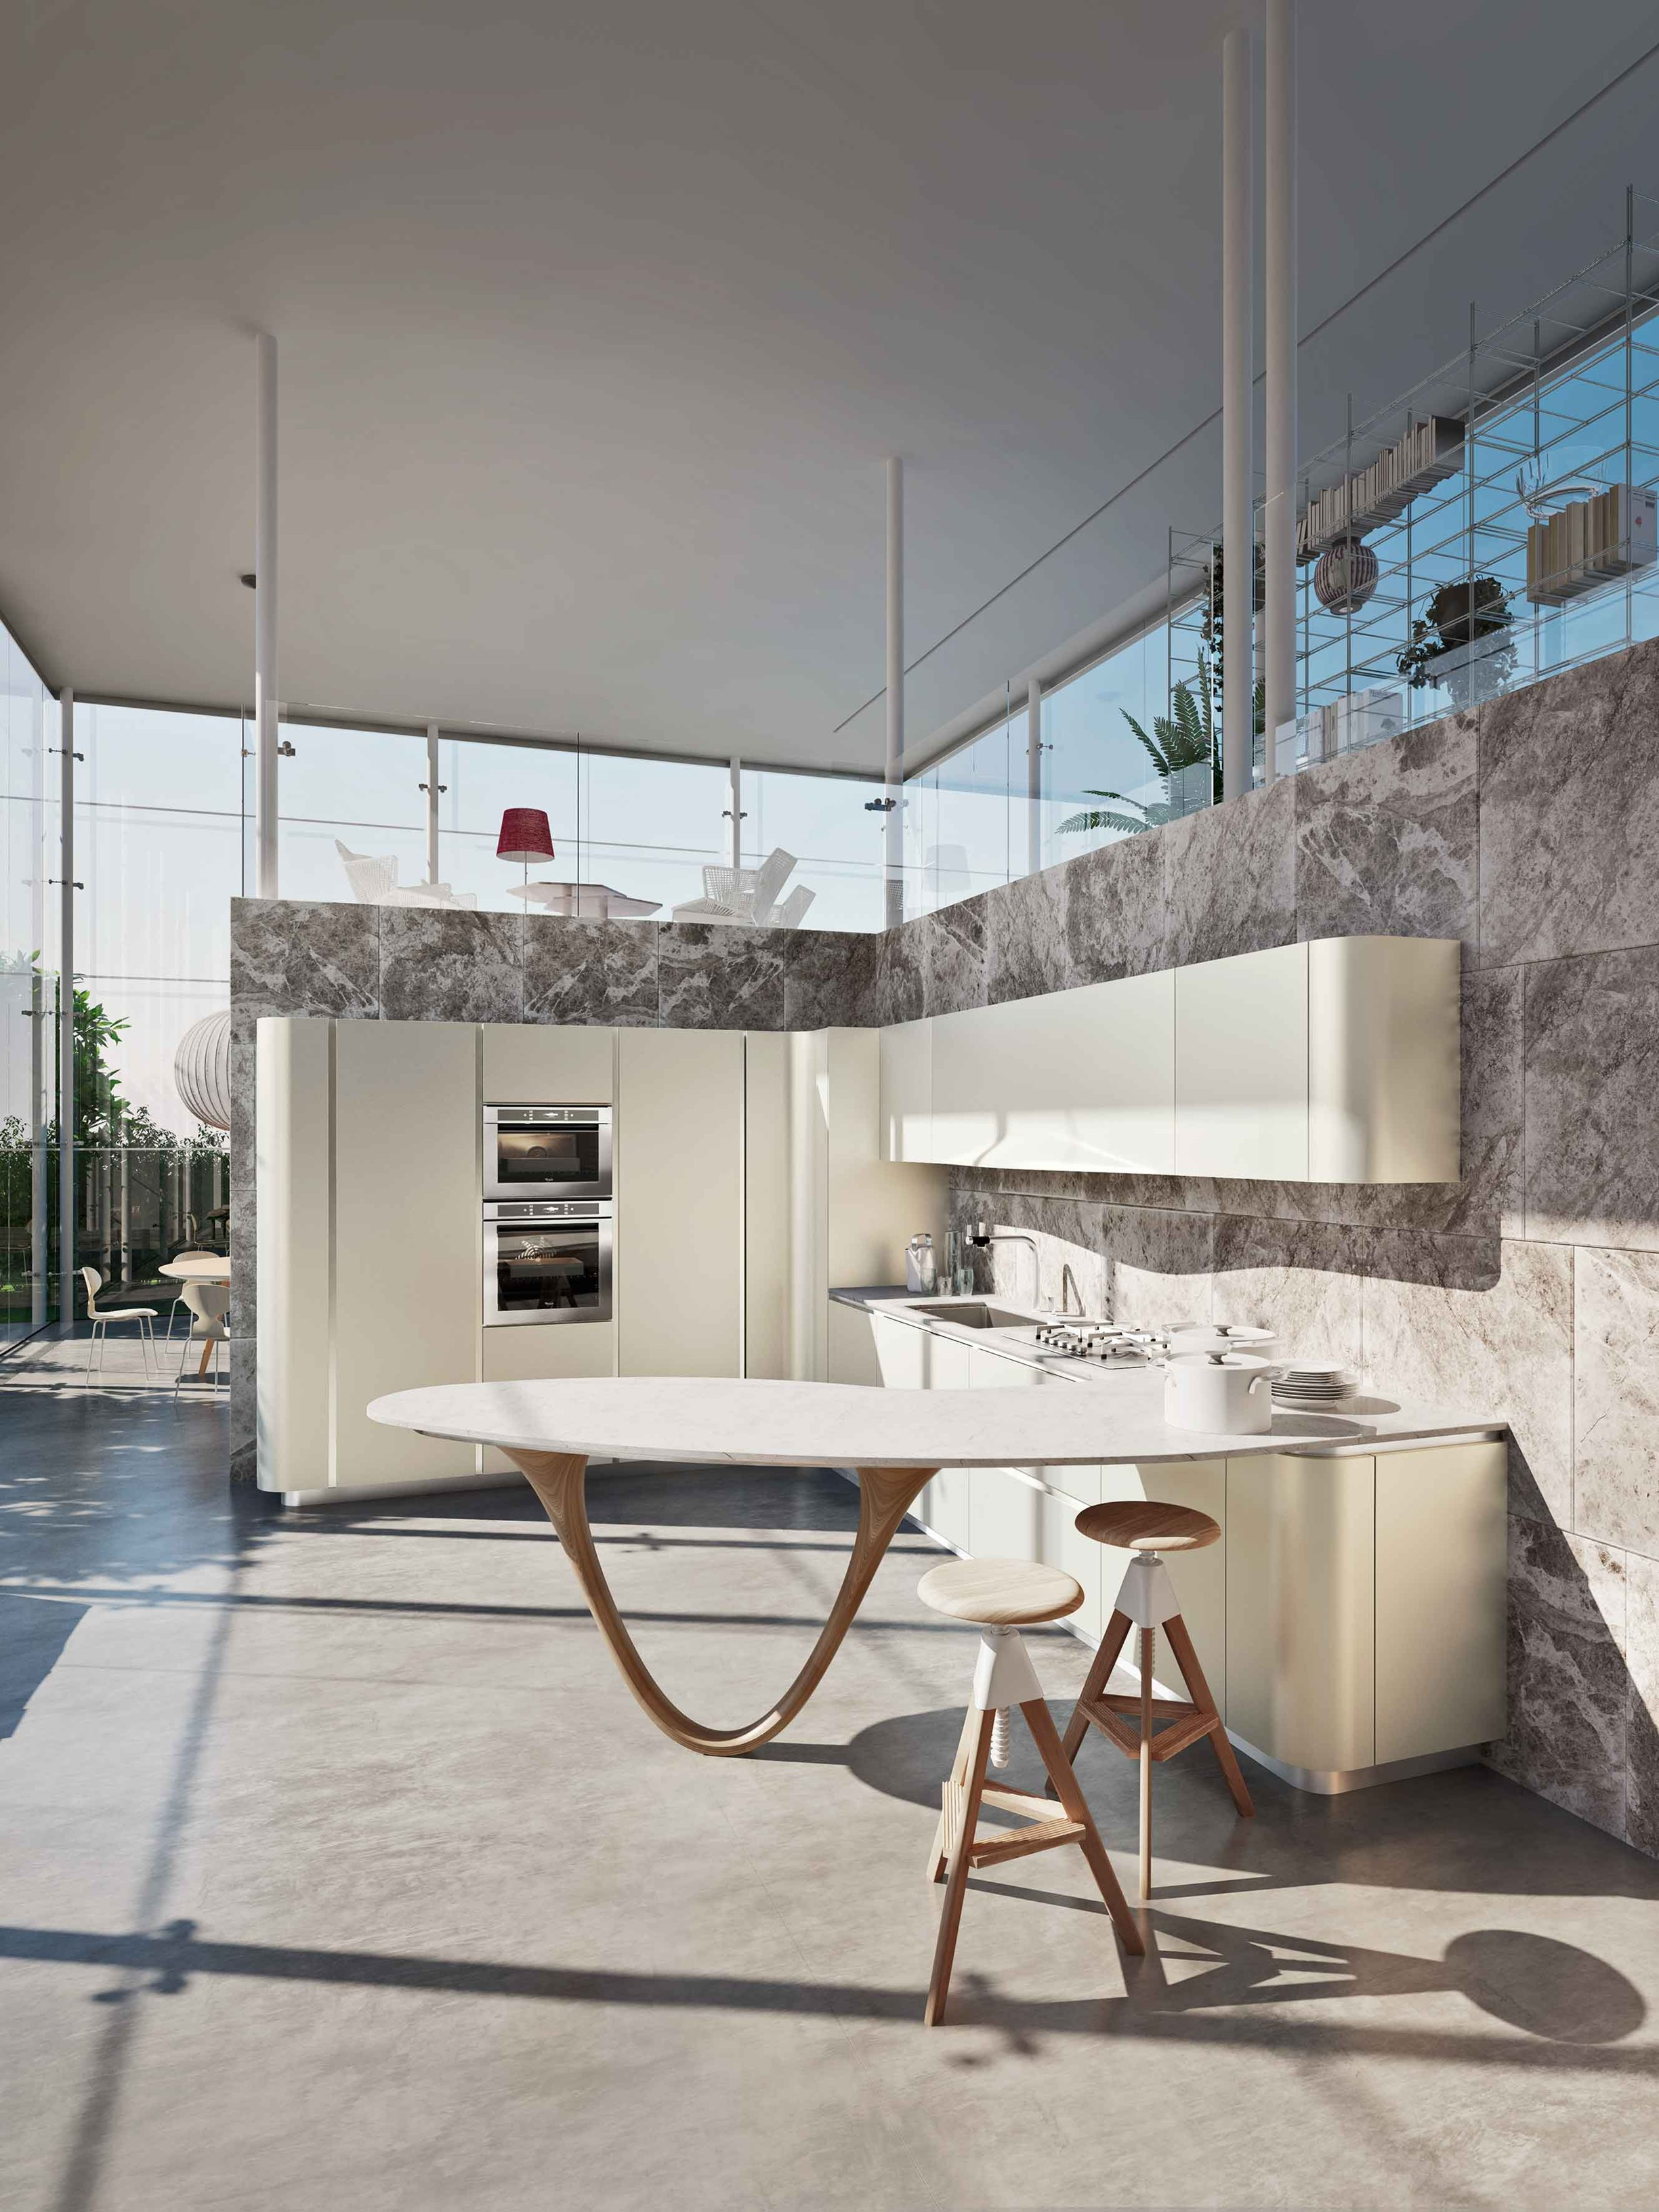 ola 20 kitchen with peninsula icone collection by snaidero design pininfarina. Black Bedroom Furniture Sets. Home Design Ideas